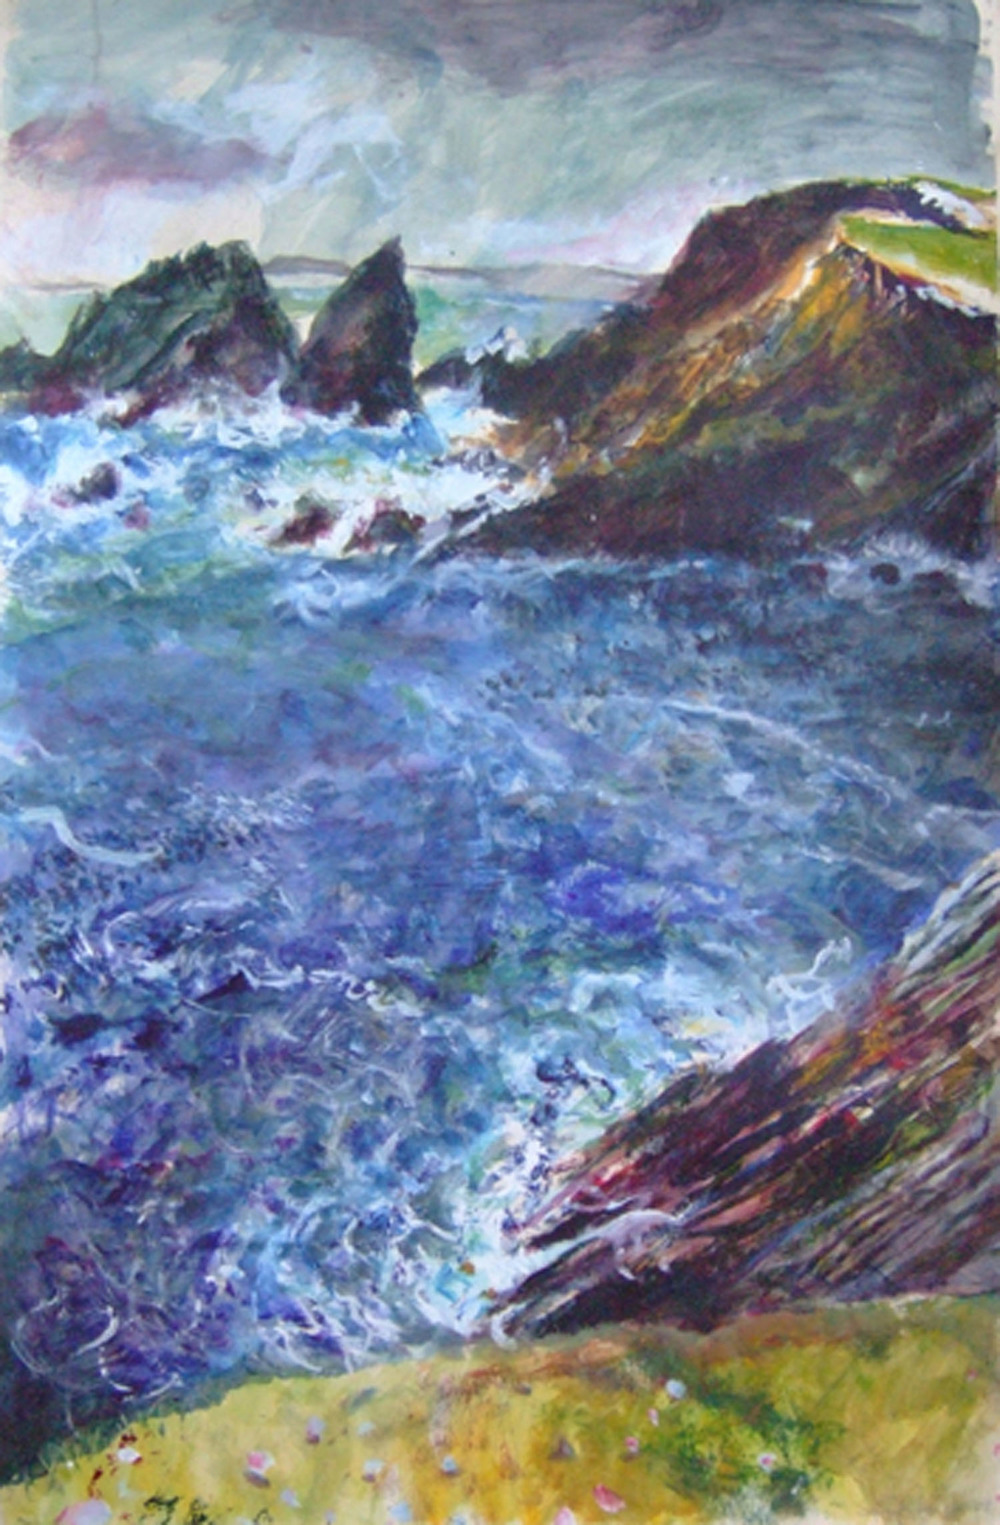 Sarah Longley_-_The Cliffs at Burra_acrylic on card_91 x 61cm.jpg